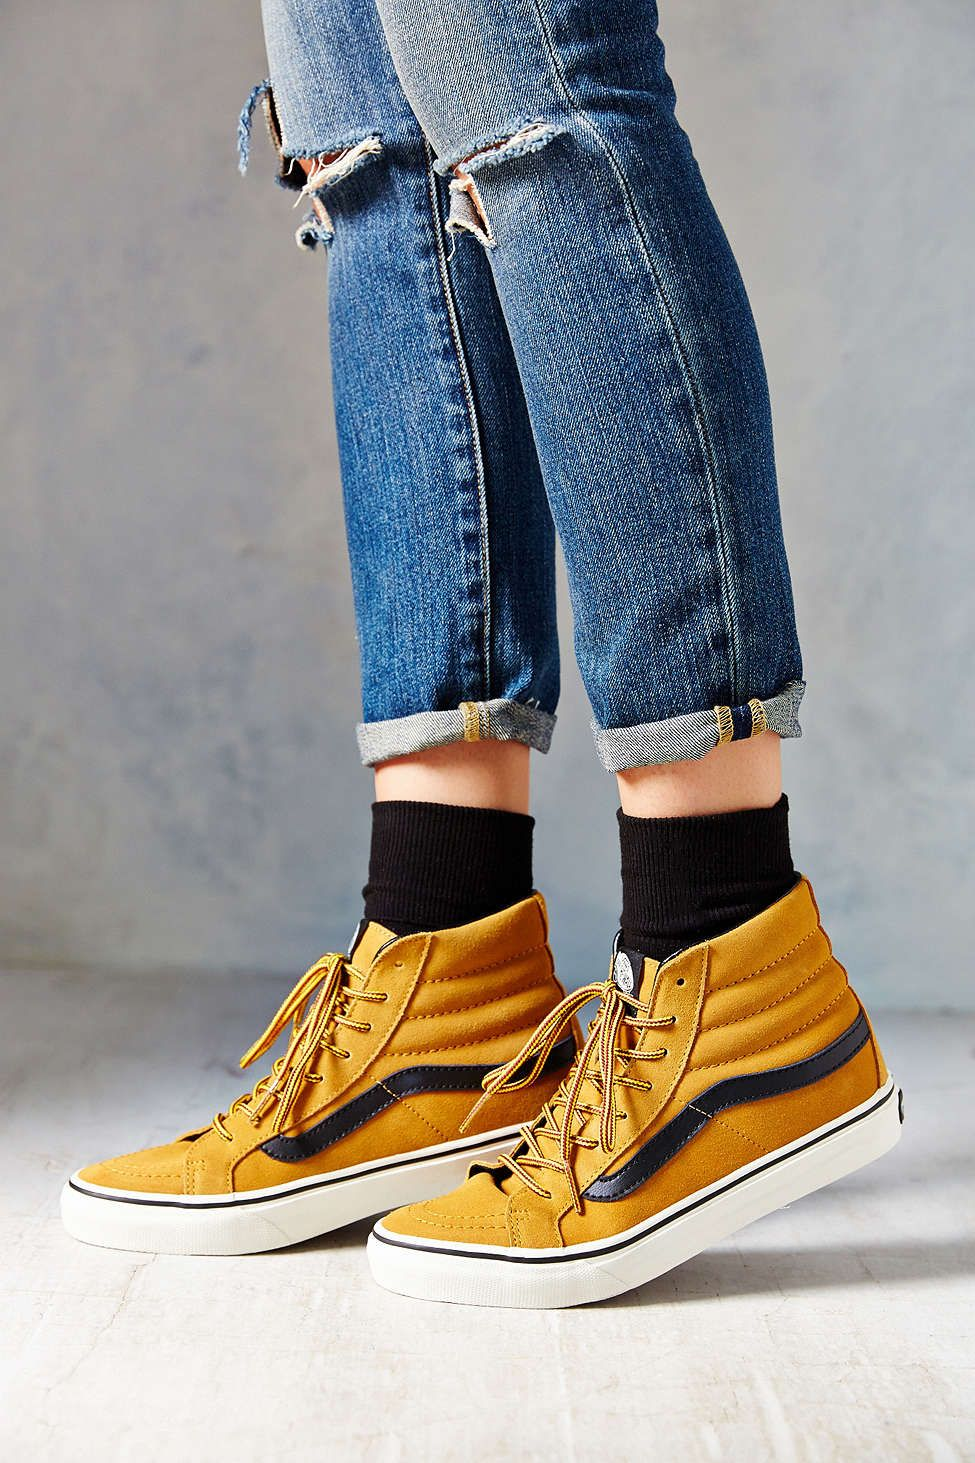 19fbd66547 Vans Sk8-Hi Slim Hiker Women s High-Top Sneaker